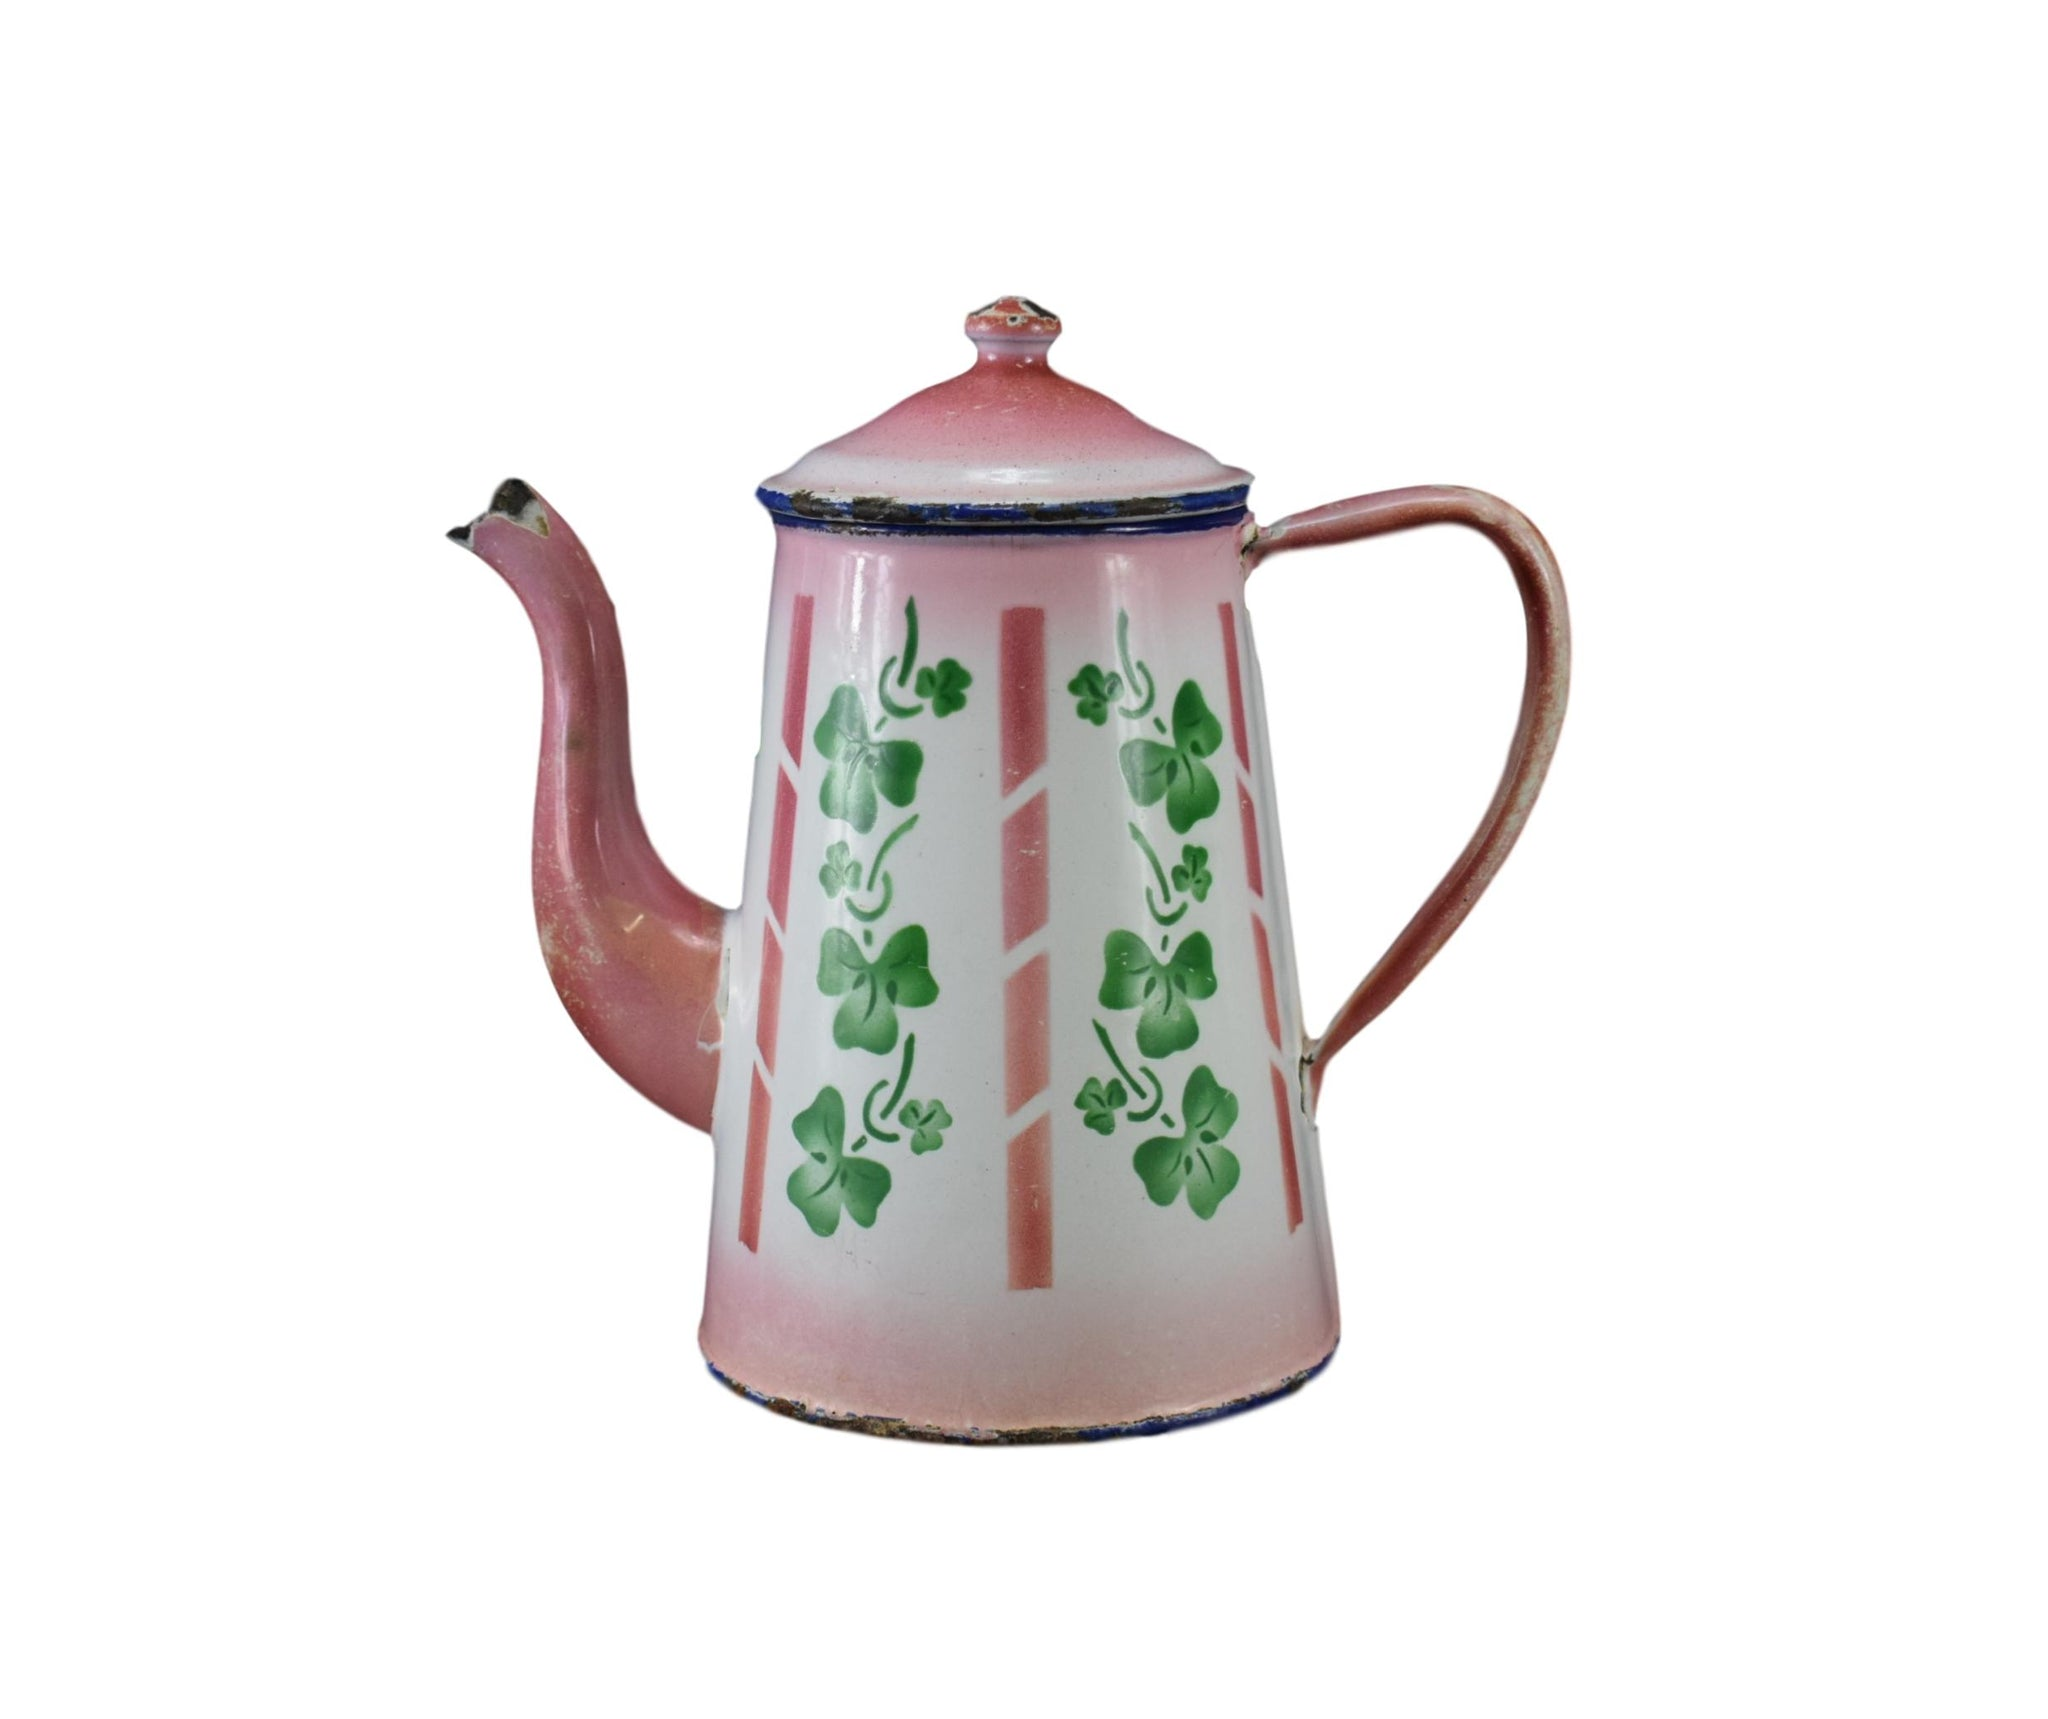 French Vintage Pink White & Green Clover Enamel Coffee Pot Country Shabby Chic Kitchenalia Water Jug